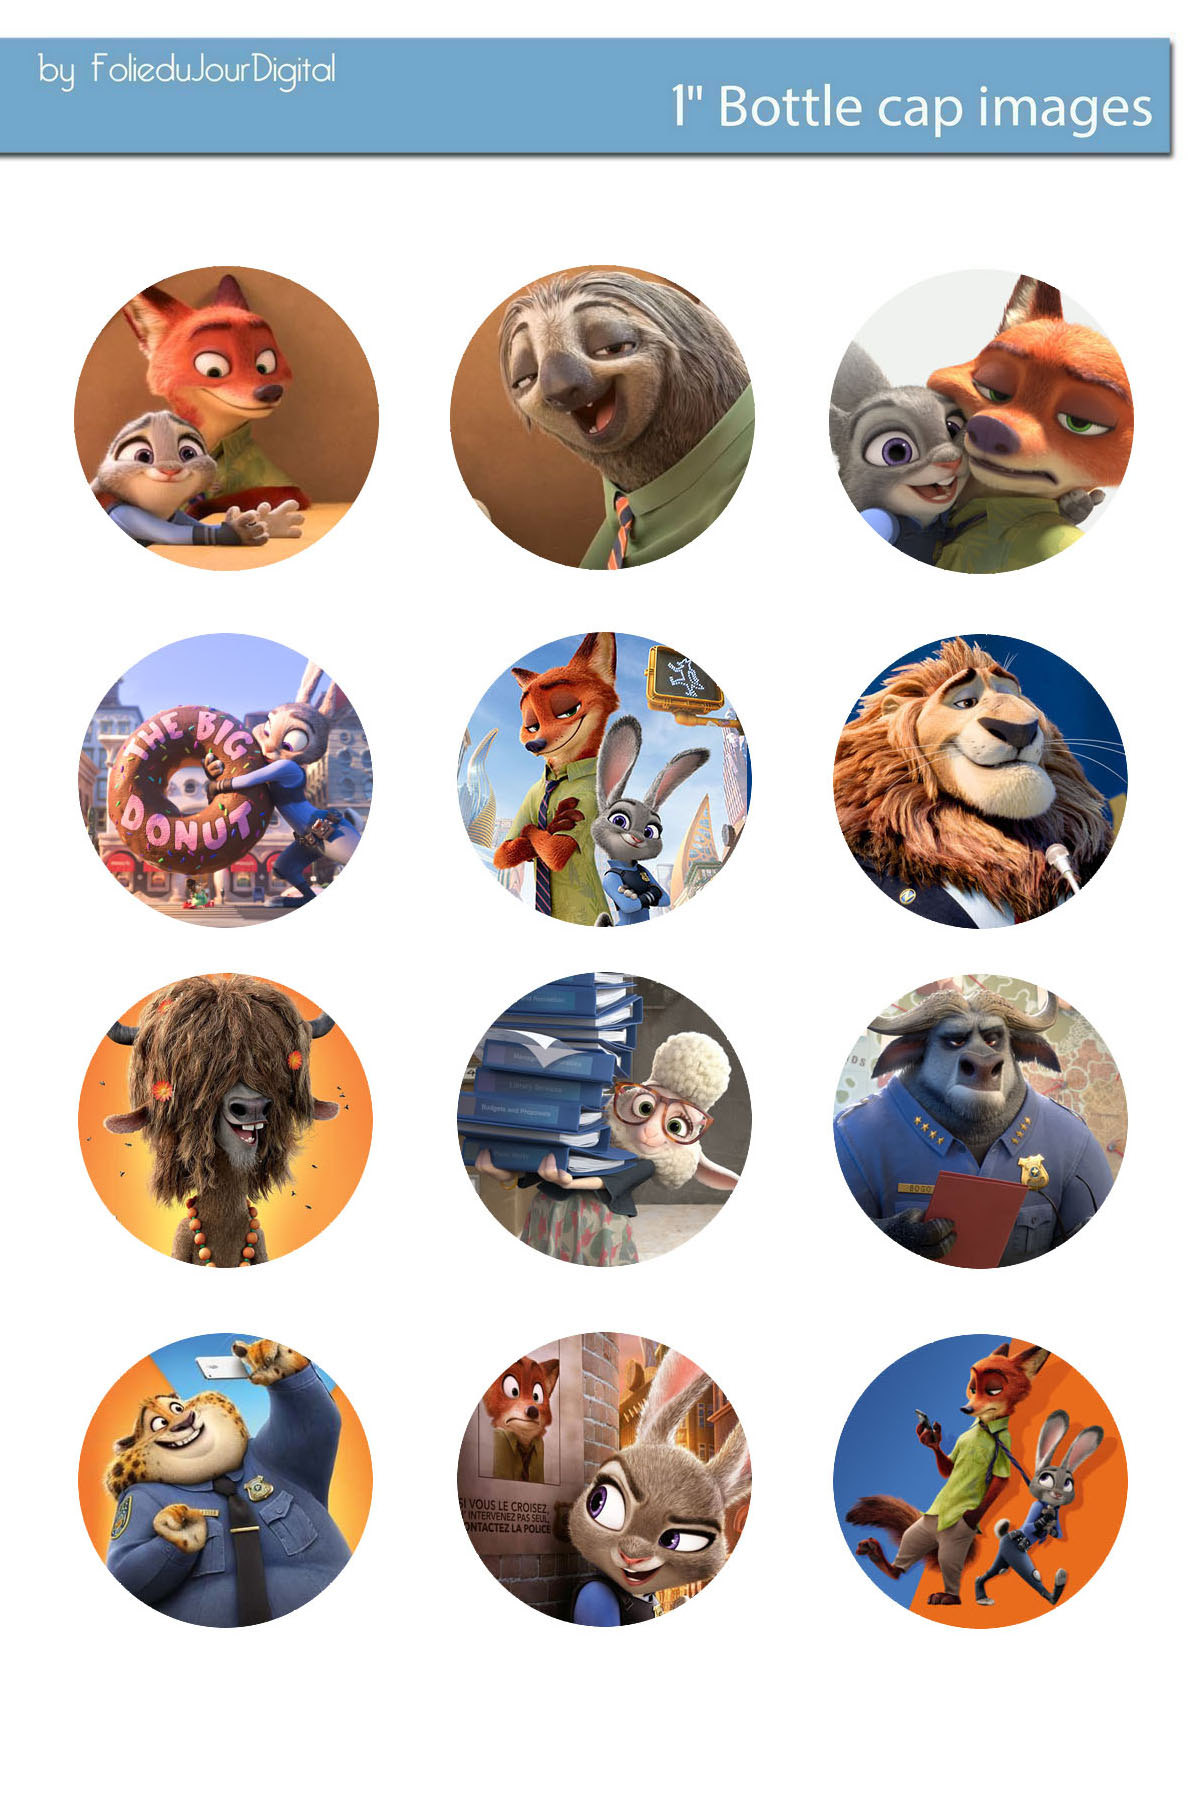 Free bottle cap images zootopia free bottle cap images for Pictures of bottle caps